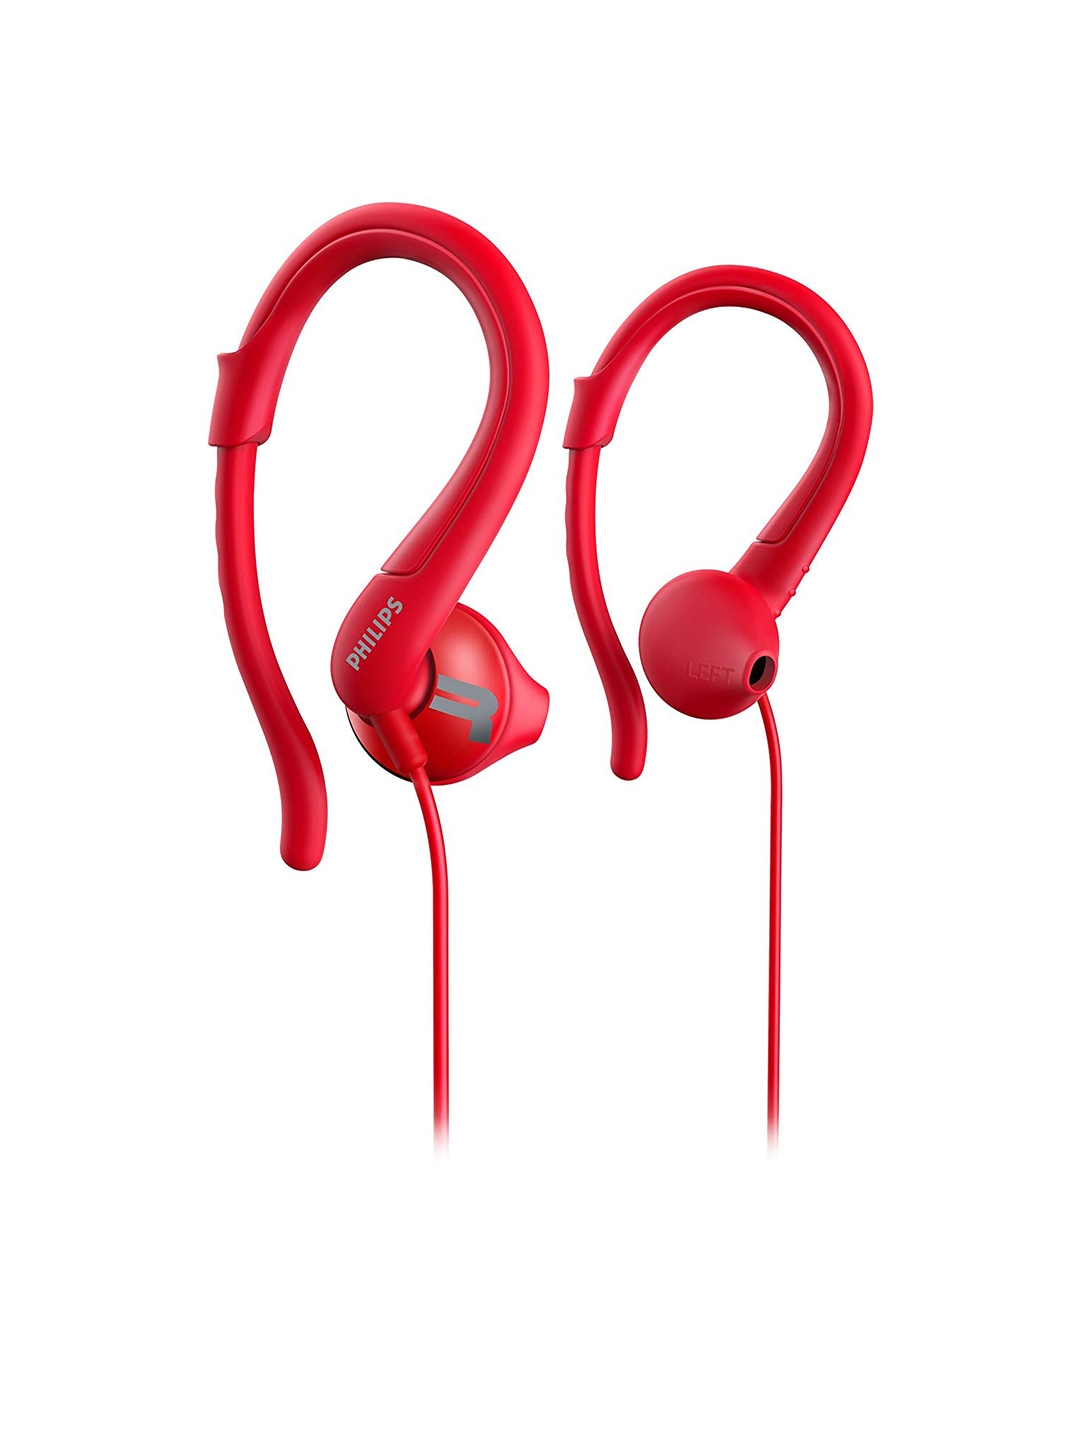 Philips Unisex Red ActionFit Wired Earphones SHQ1250TRD/00 Philips Headphones